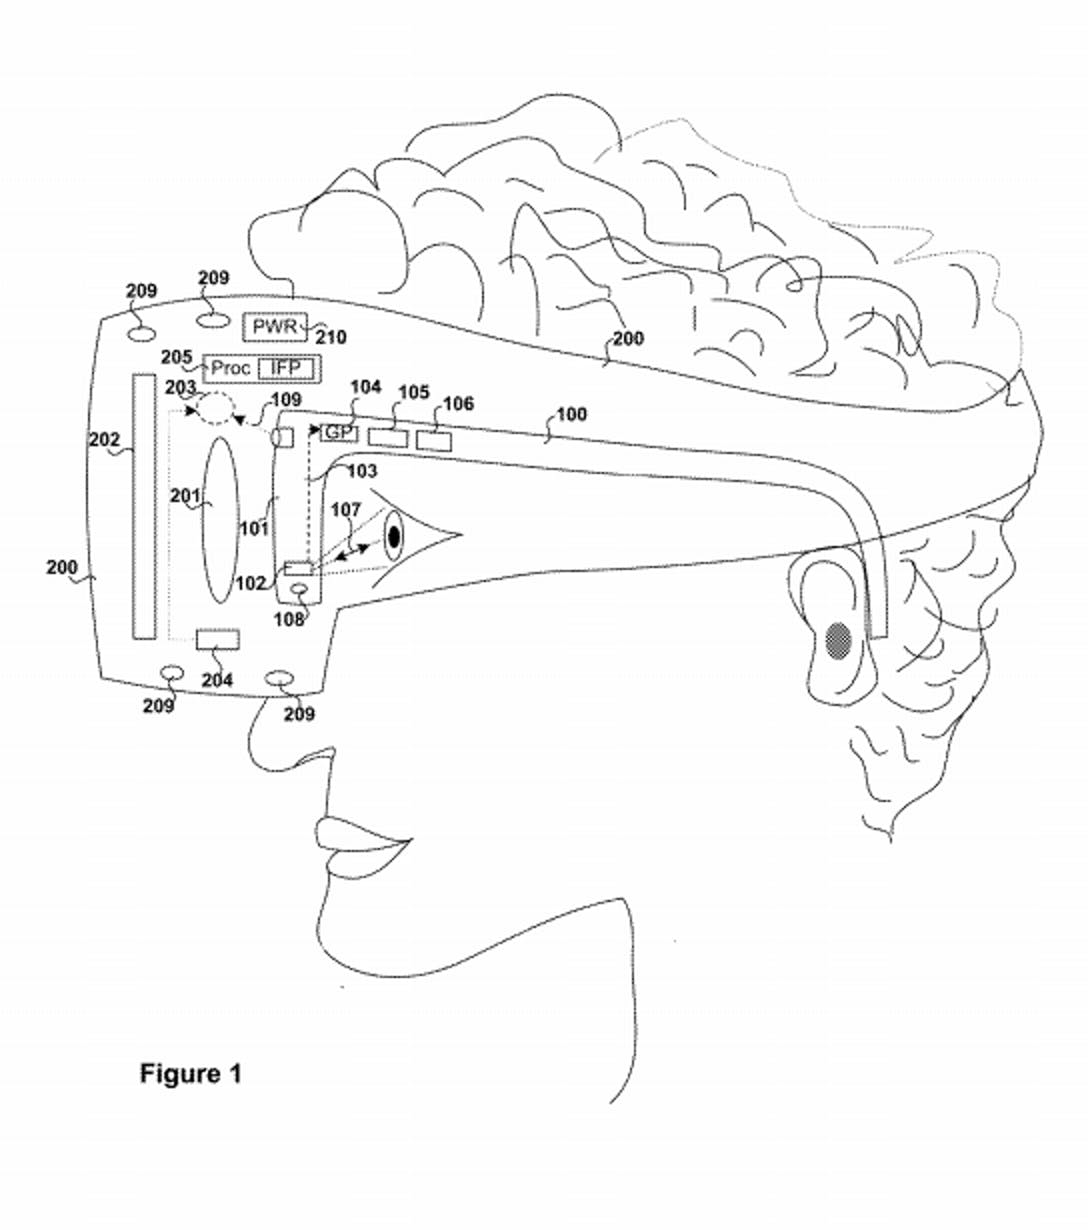 PlayStation 5: Patent Surfaces New Plans for Sony's VR